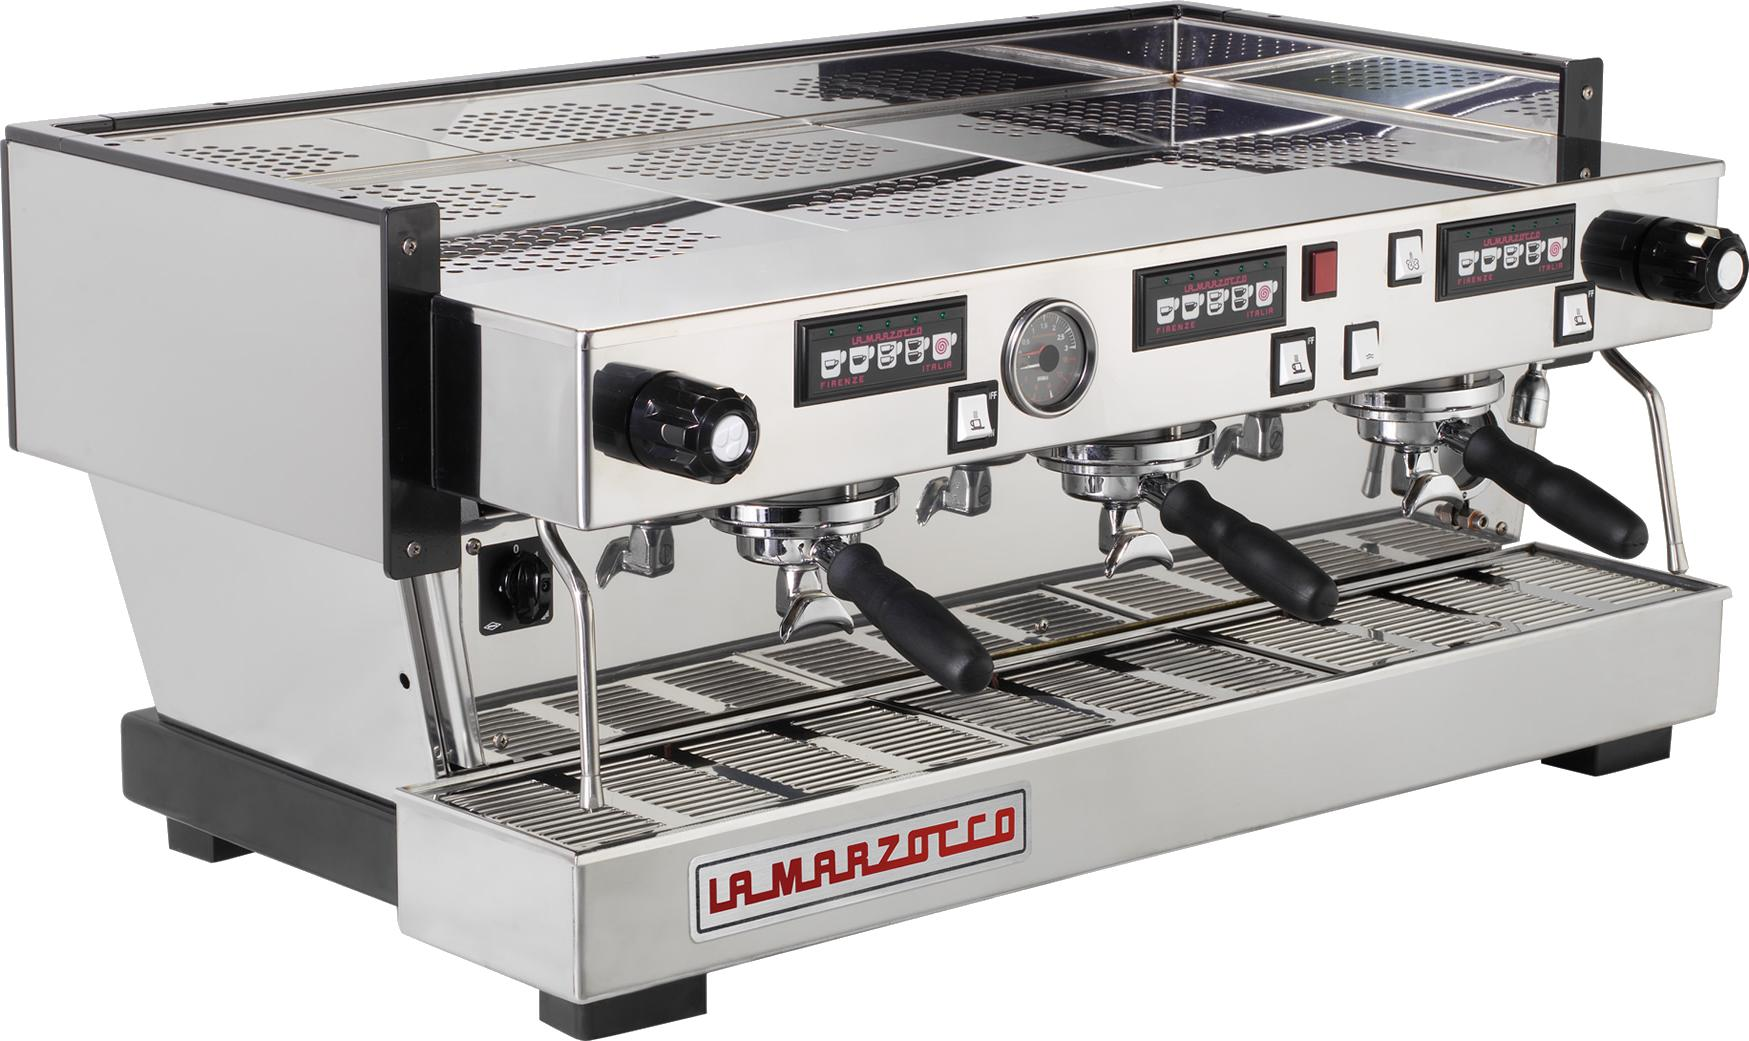 la marzocco linea classic vs la marzocco linea pb 2 group compare commercial coffee machines. Black Bedroom Furniture Sets. Home Design Ideas